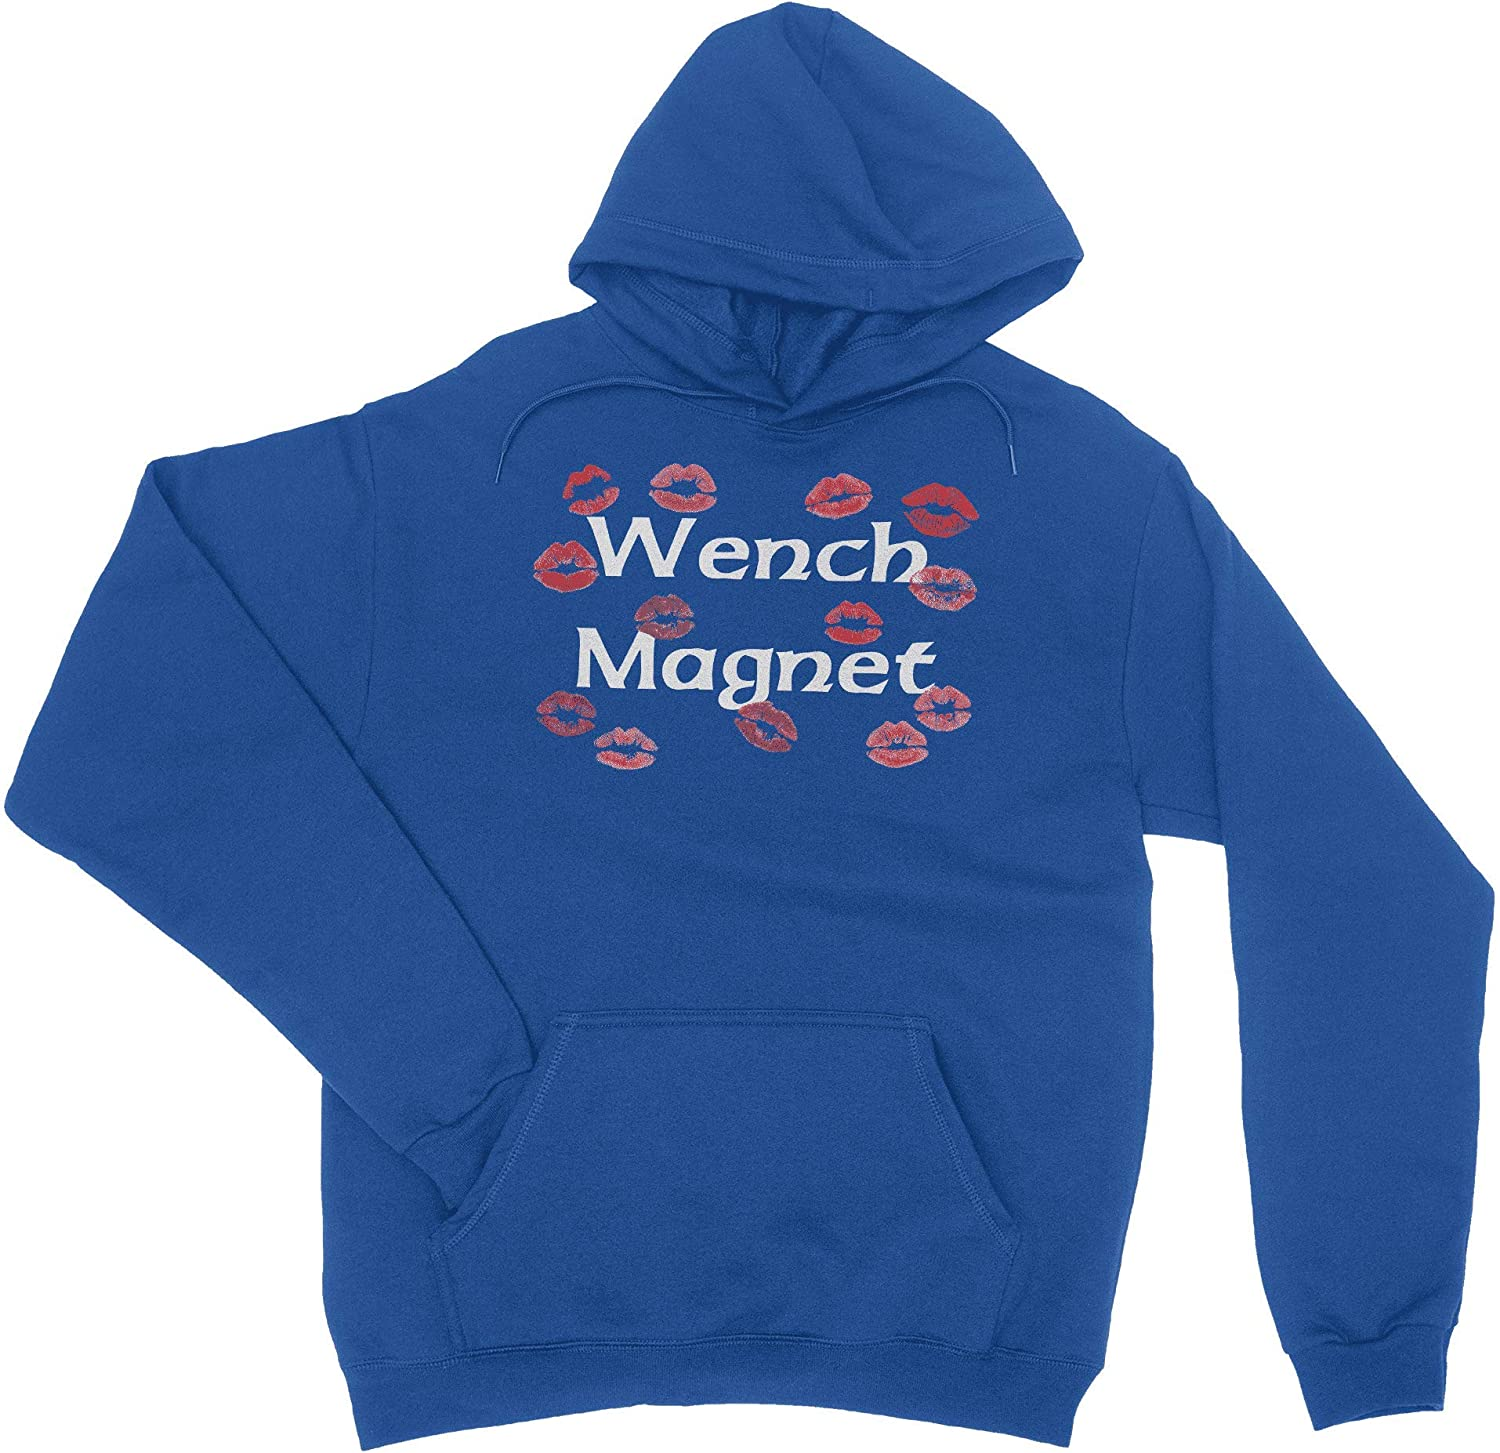 HARD EDGE DESIGN Girl's Youth Magnet Max 51% OFF Wench T-Shirt Manufacturer OFFicial shop